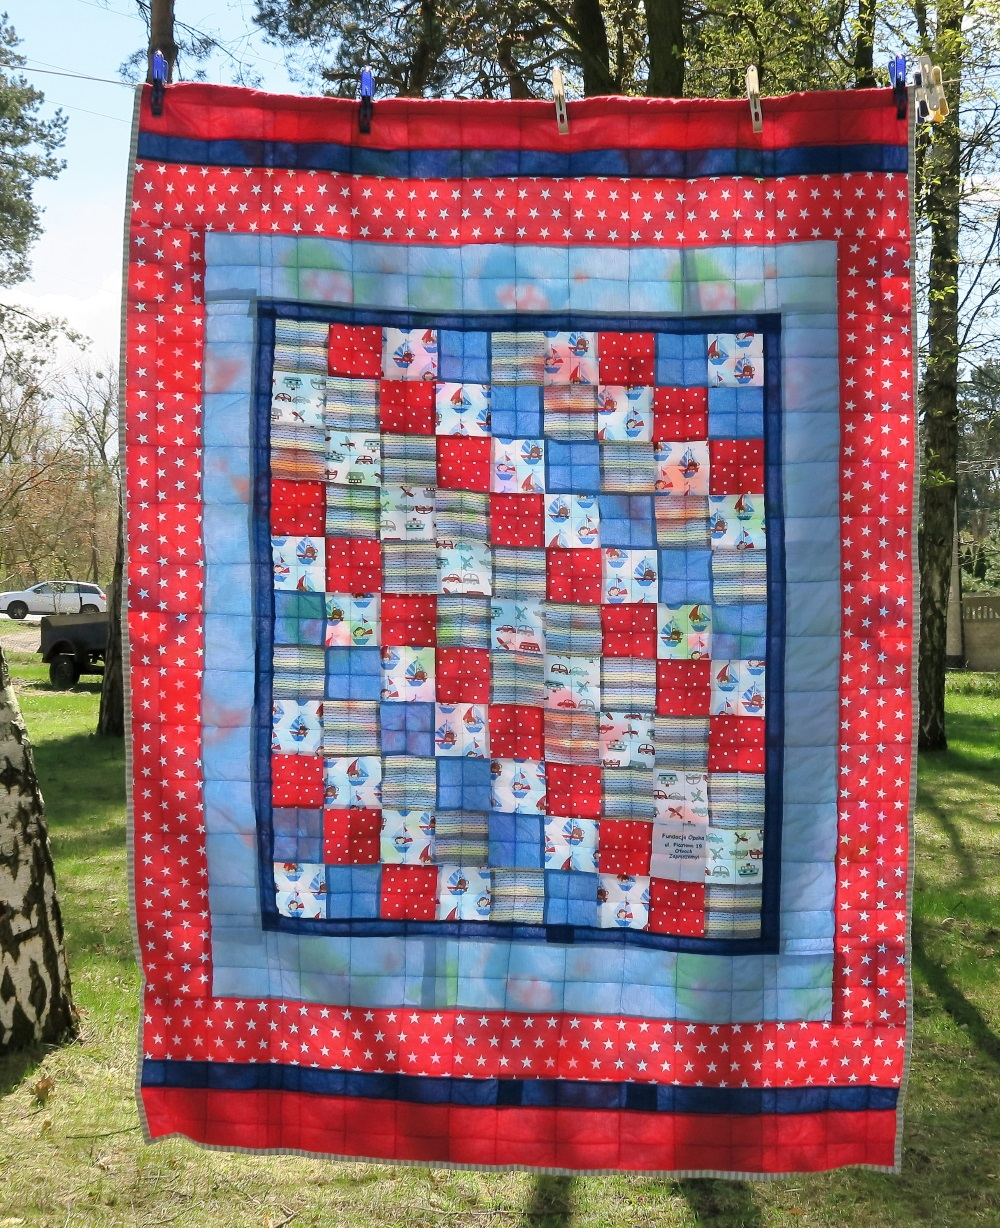 36 Center of top donated by a friend in AZ. I added borders to make it a European twin size.